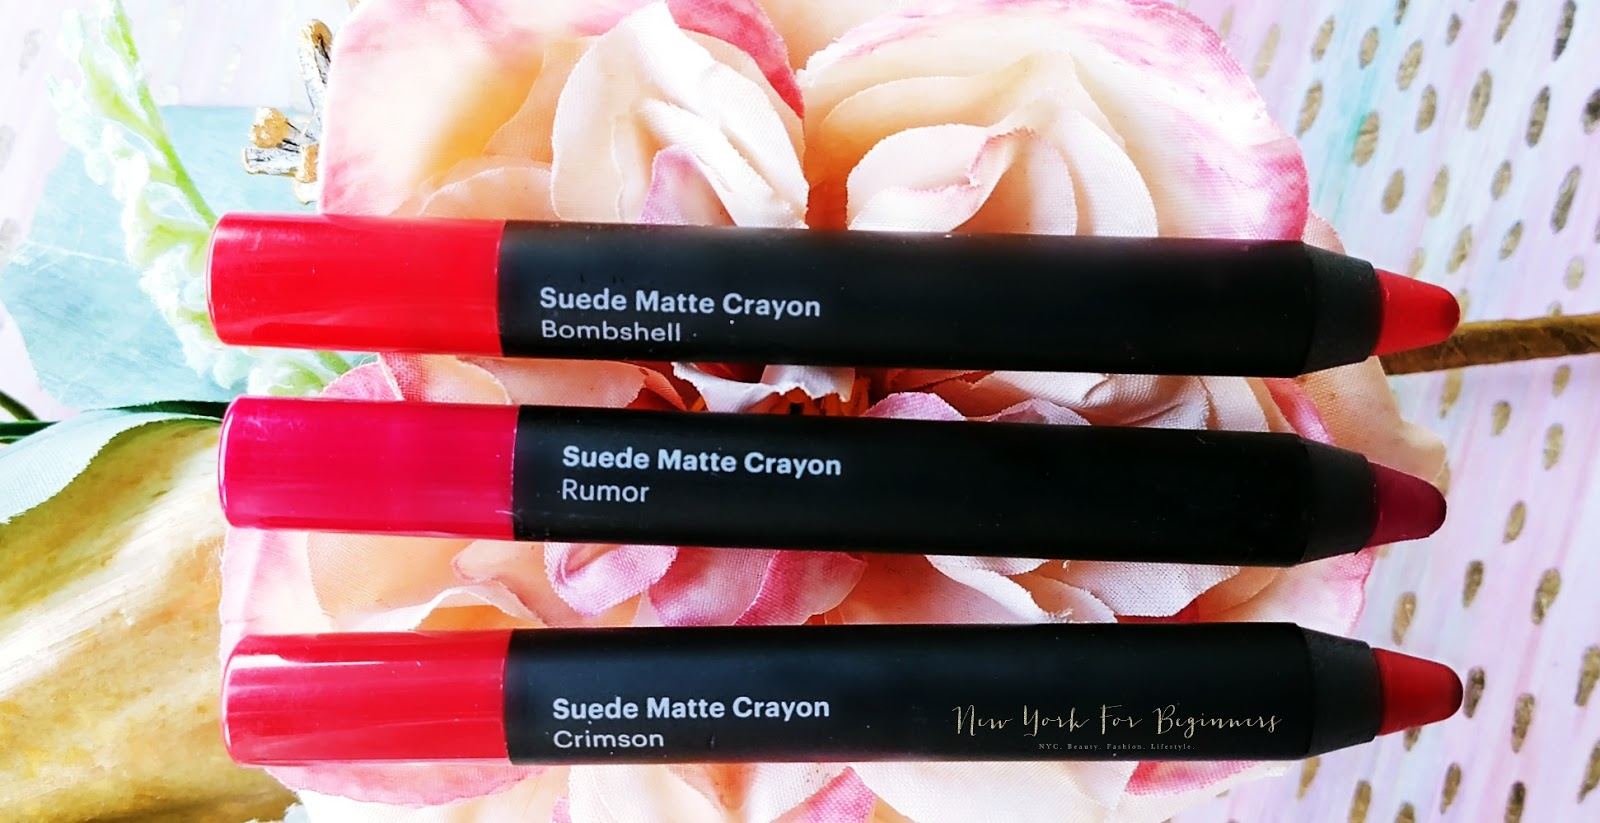 Glo Beauty Suede Matte Crayon review for dry lips at New York For beginners